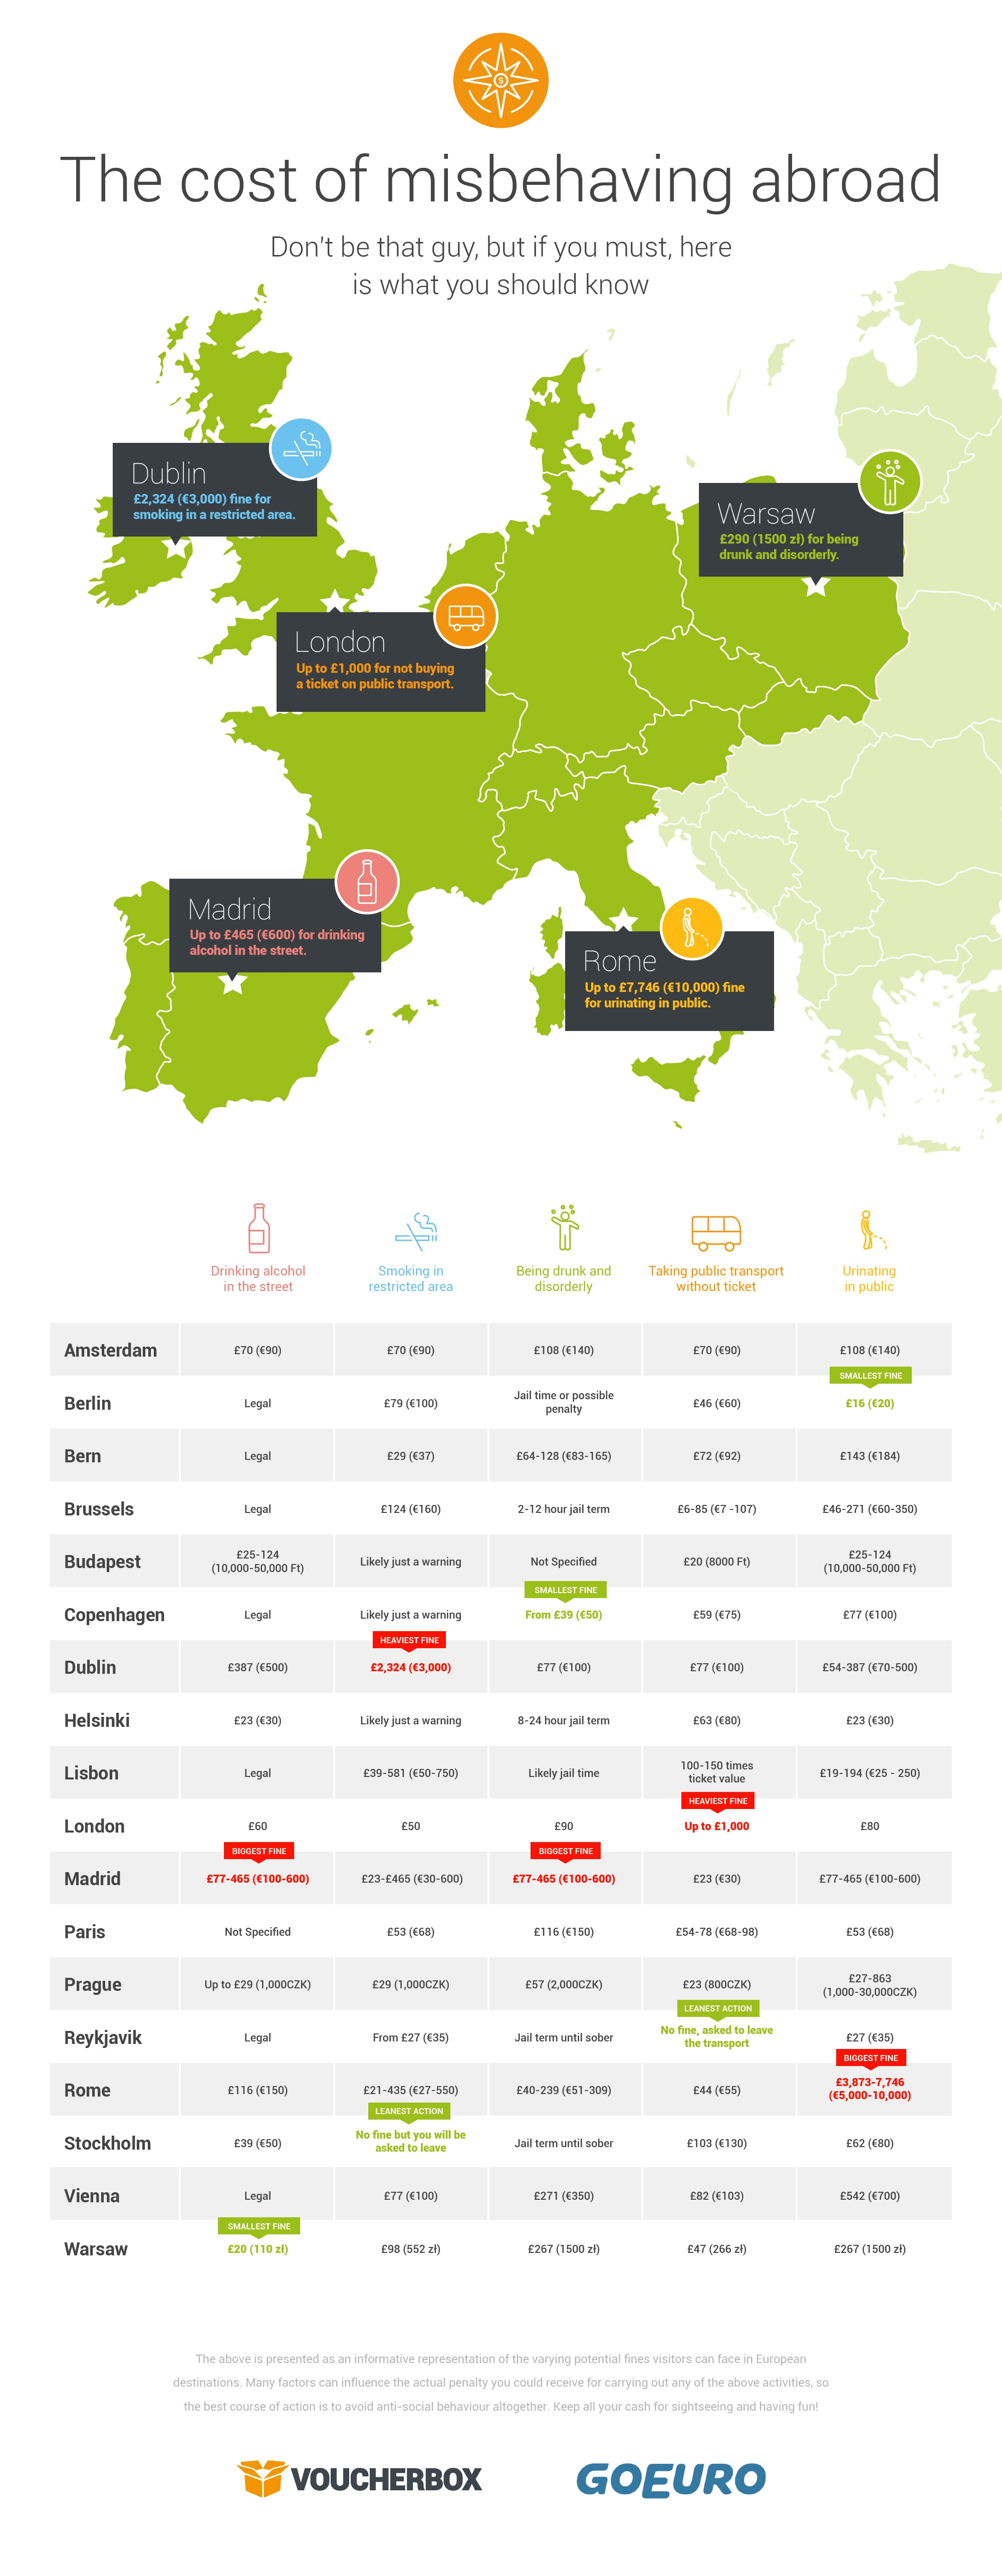 The cost of misbehaving abroad infographic